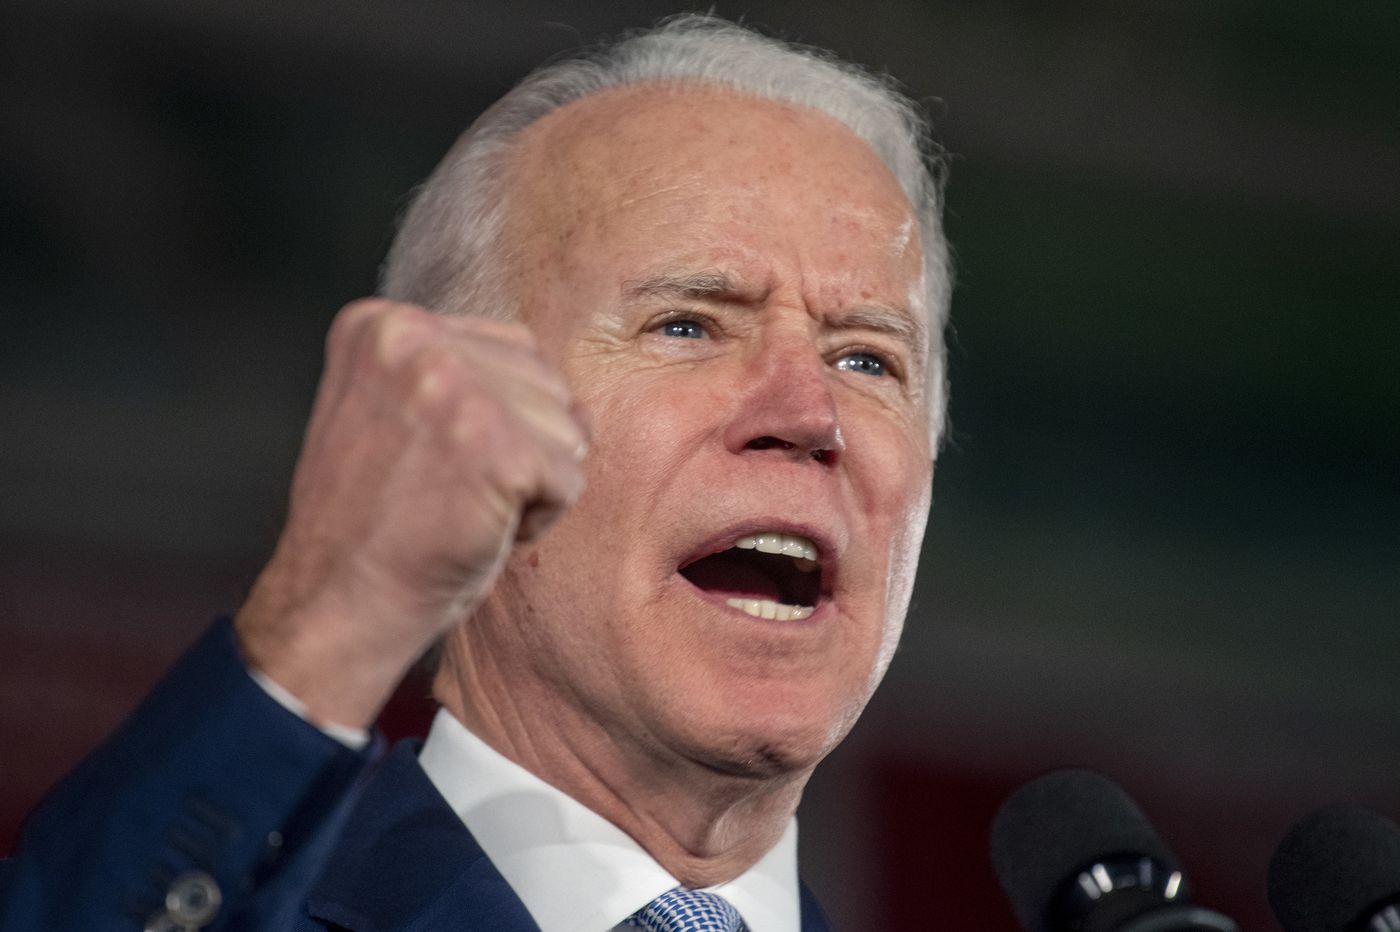 Biden's win sets up Super Tuesday; supervised injection site halted for now | Morning Newsletter